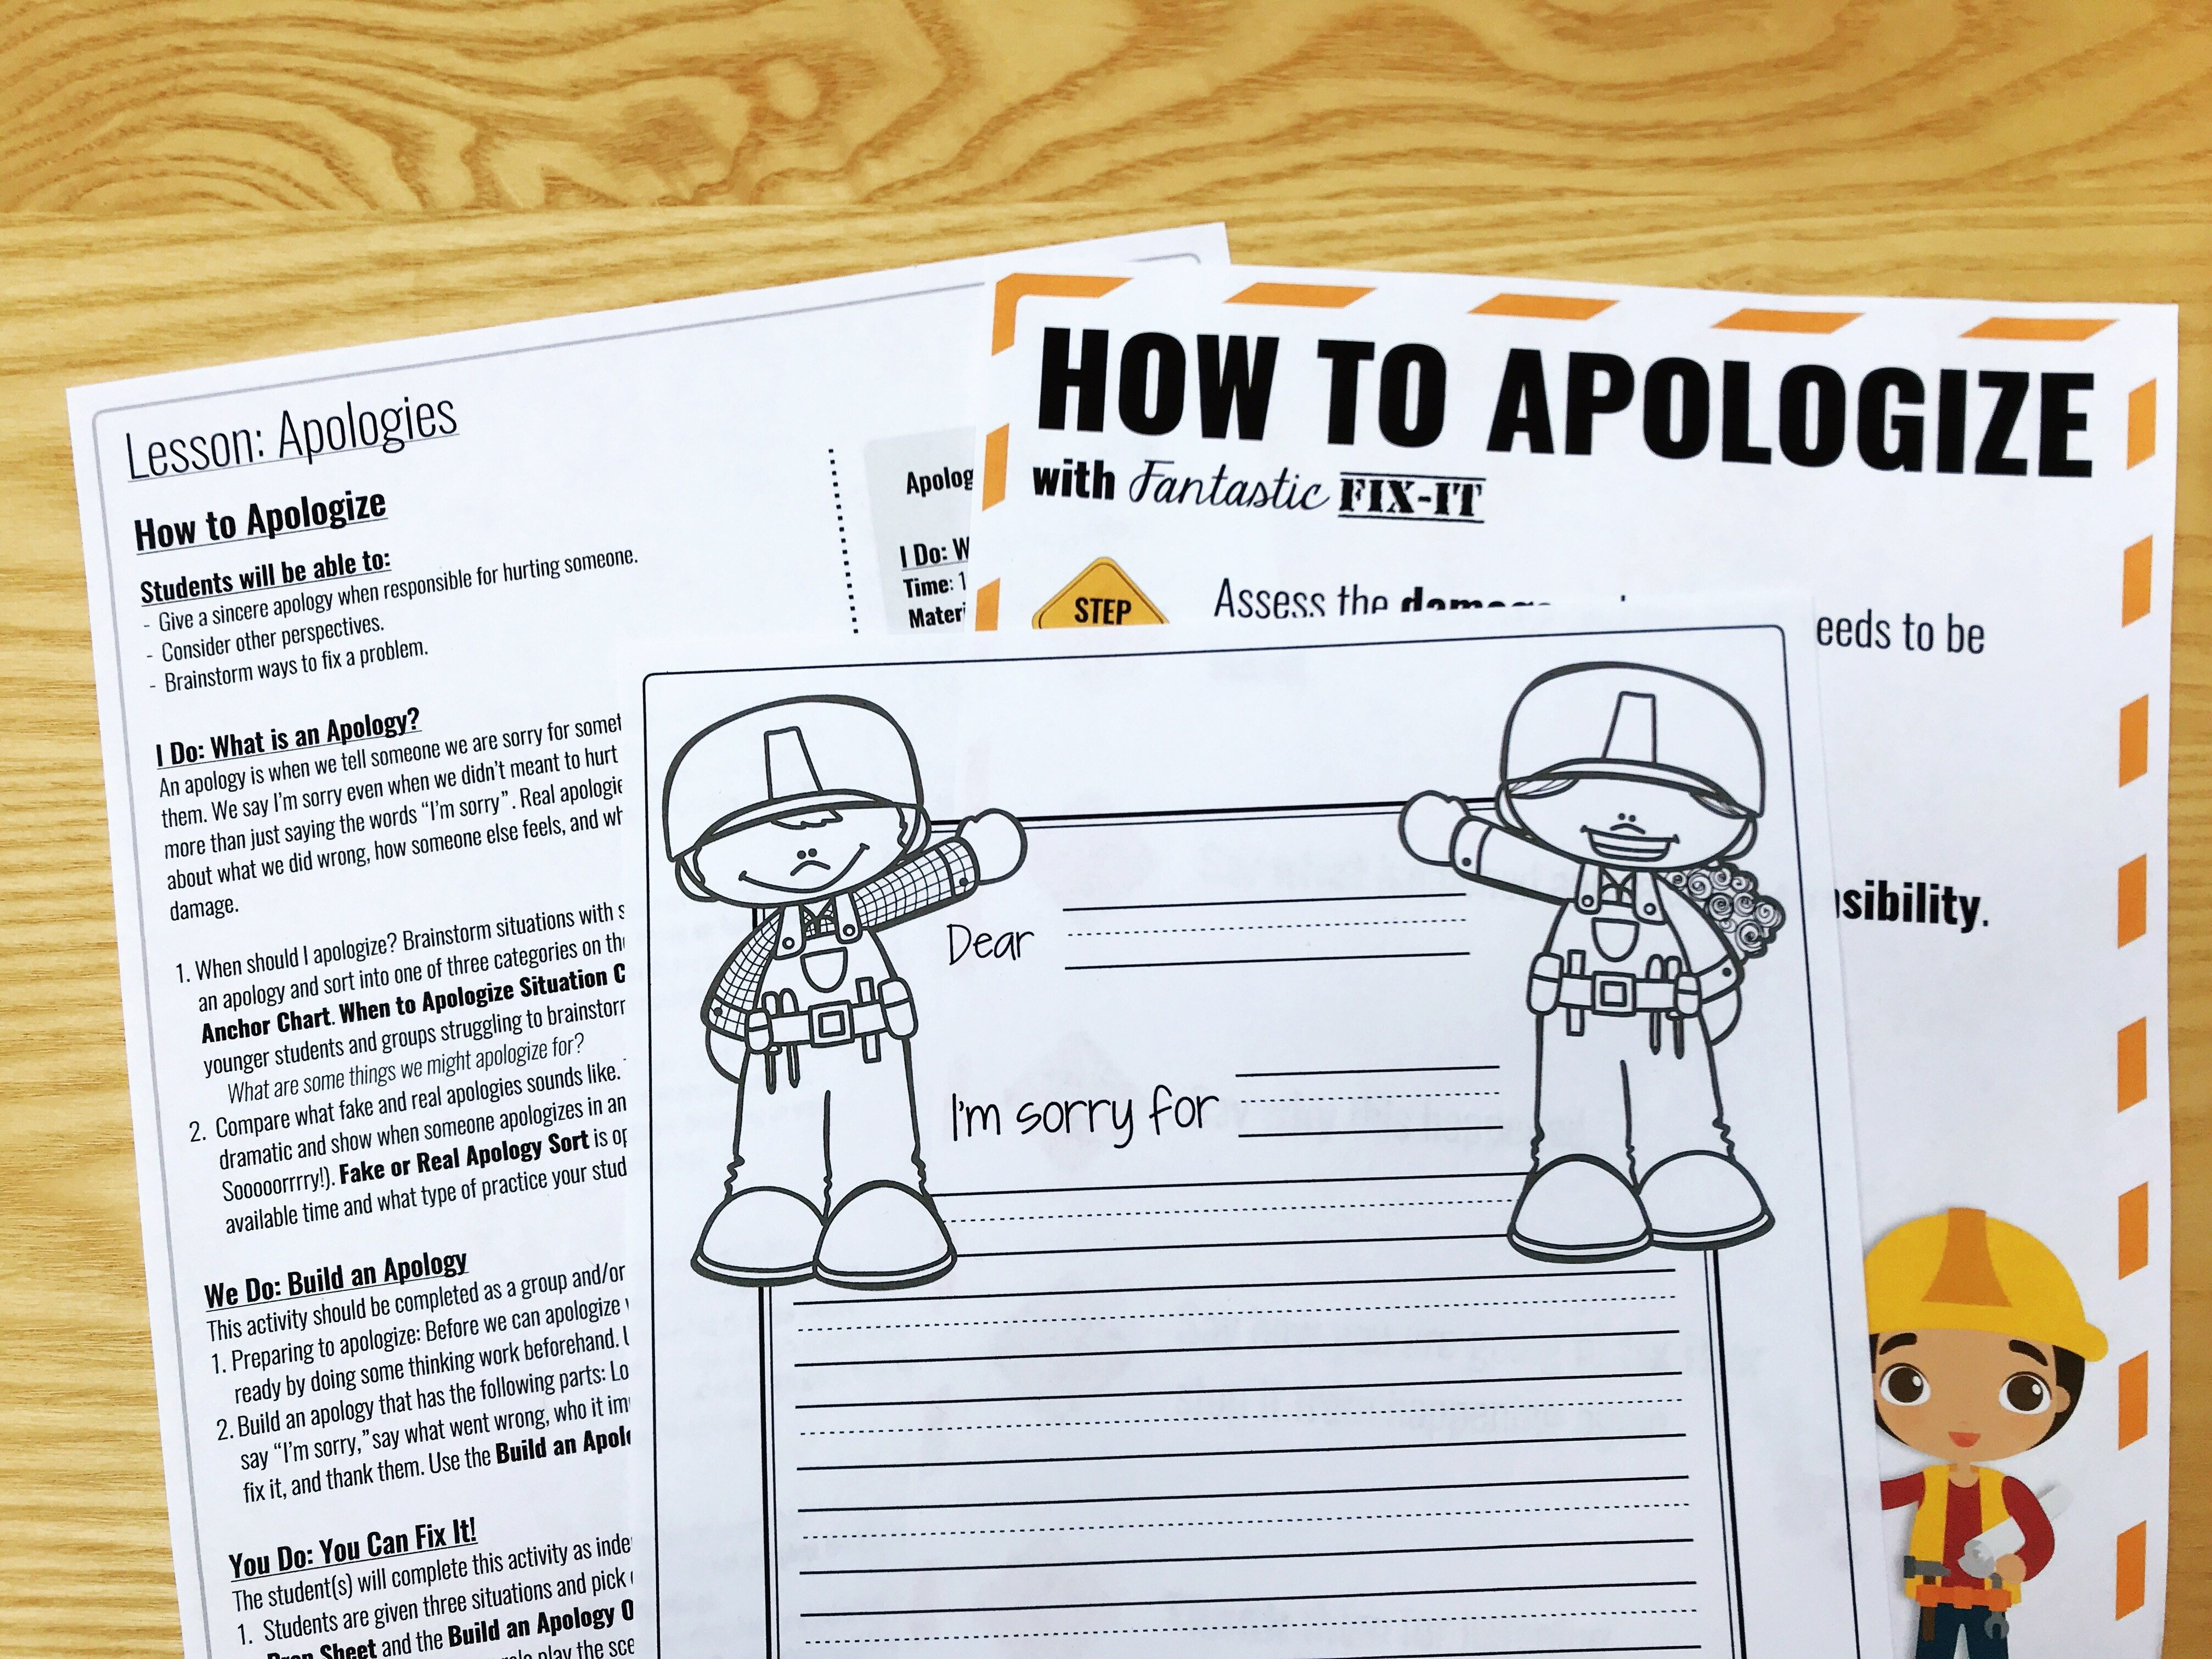 teach students how to say sorry.